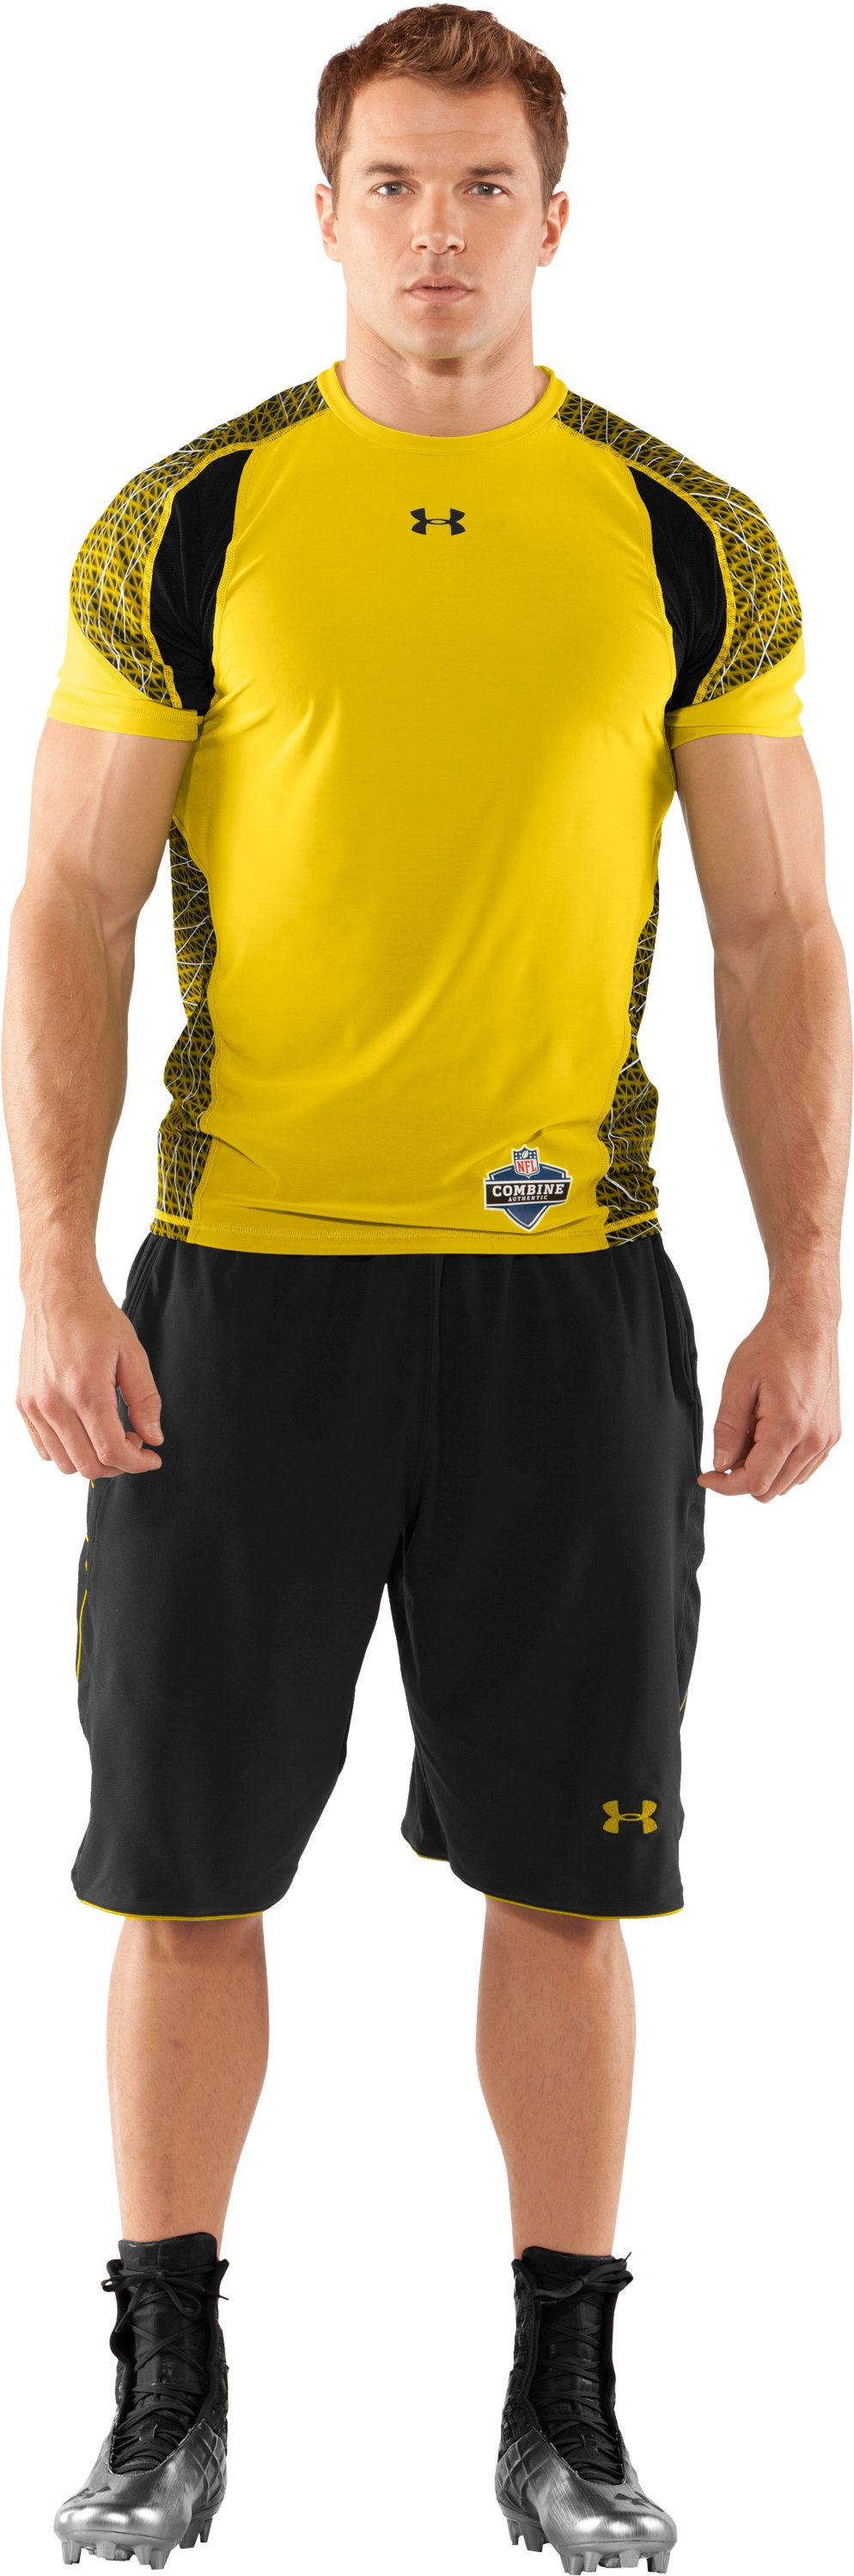 Men's NFL Combine Authentic Warp Speed Fitted Short Sleeve, Taxi, Front